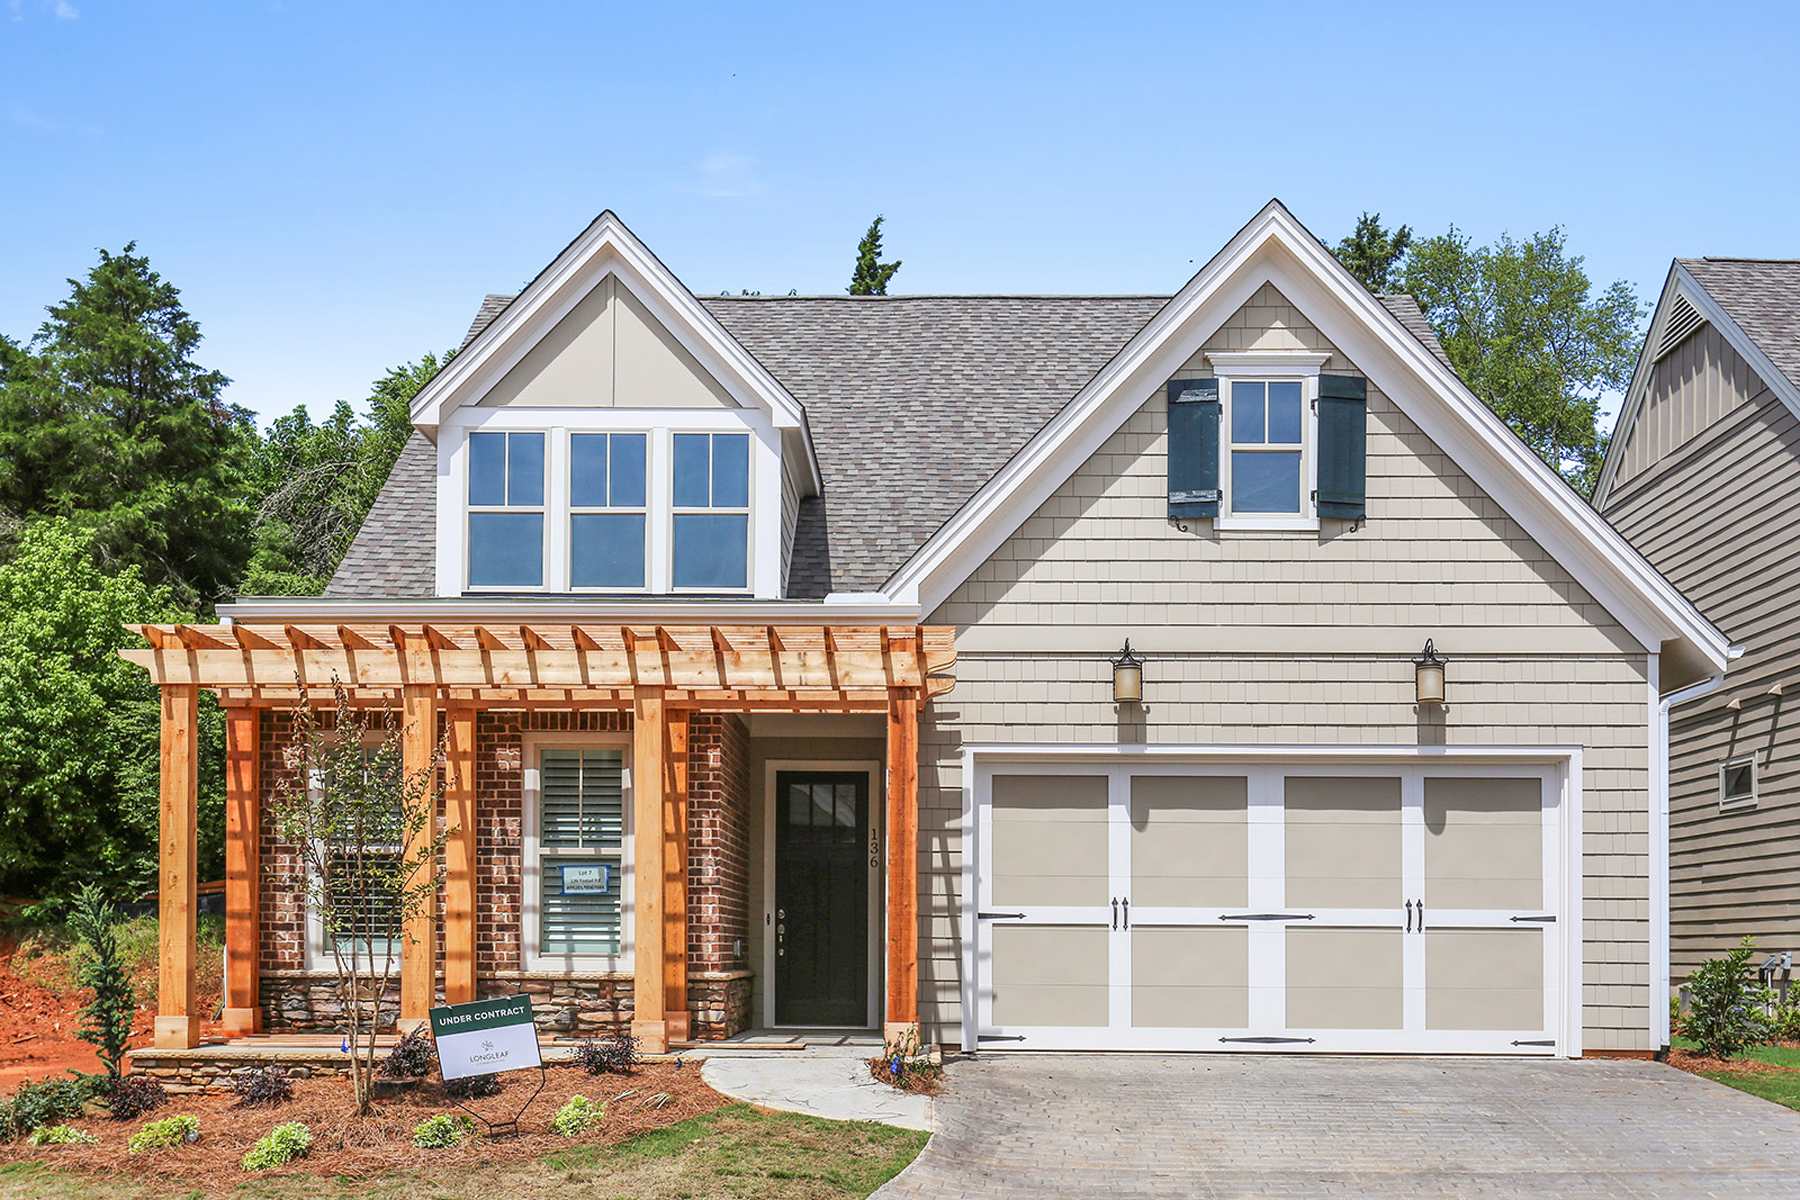 Single Family Home for Sale at Premier Active Adult Community 360 Hotchkiss Ln Marietta, Georgia 30064 United States